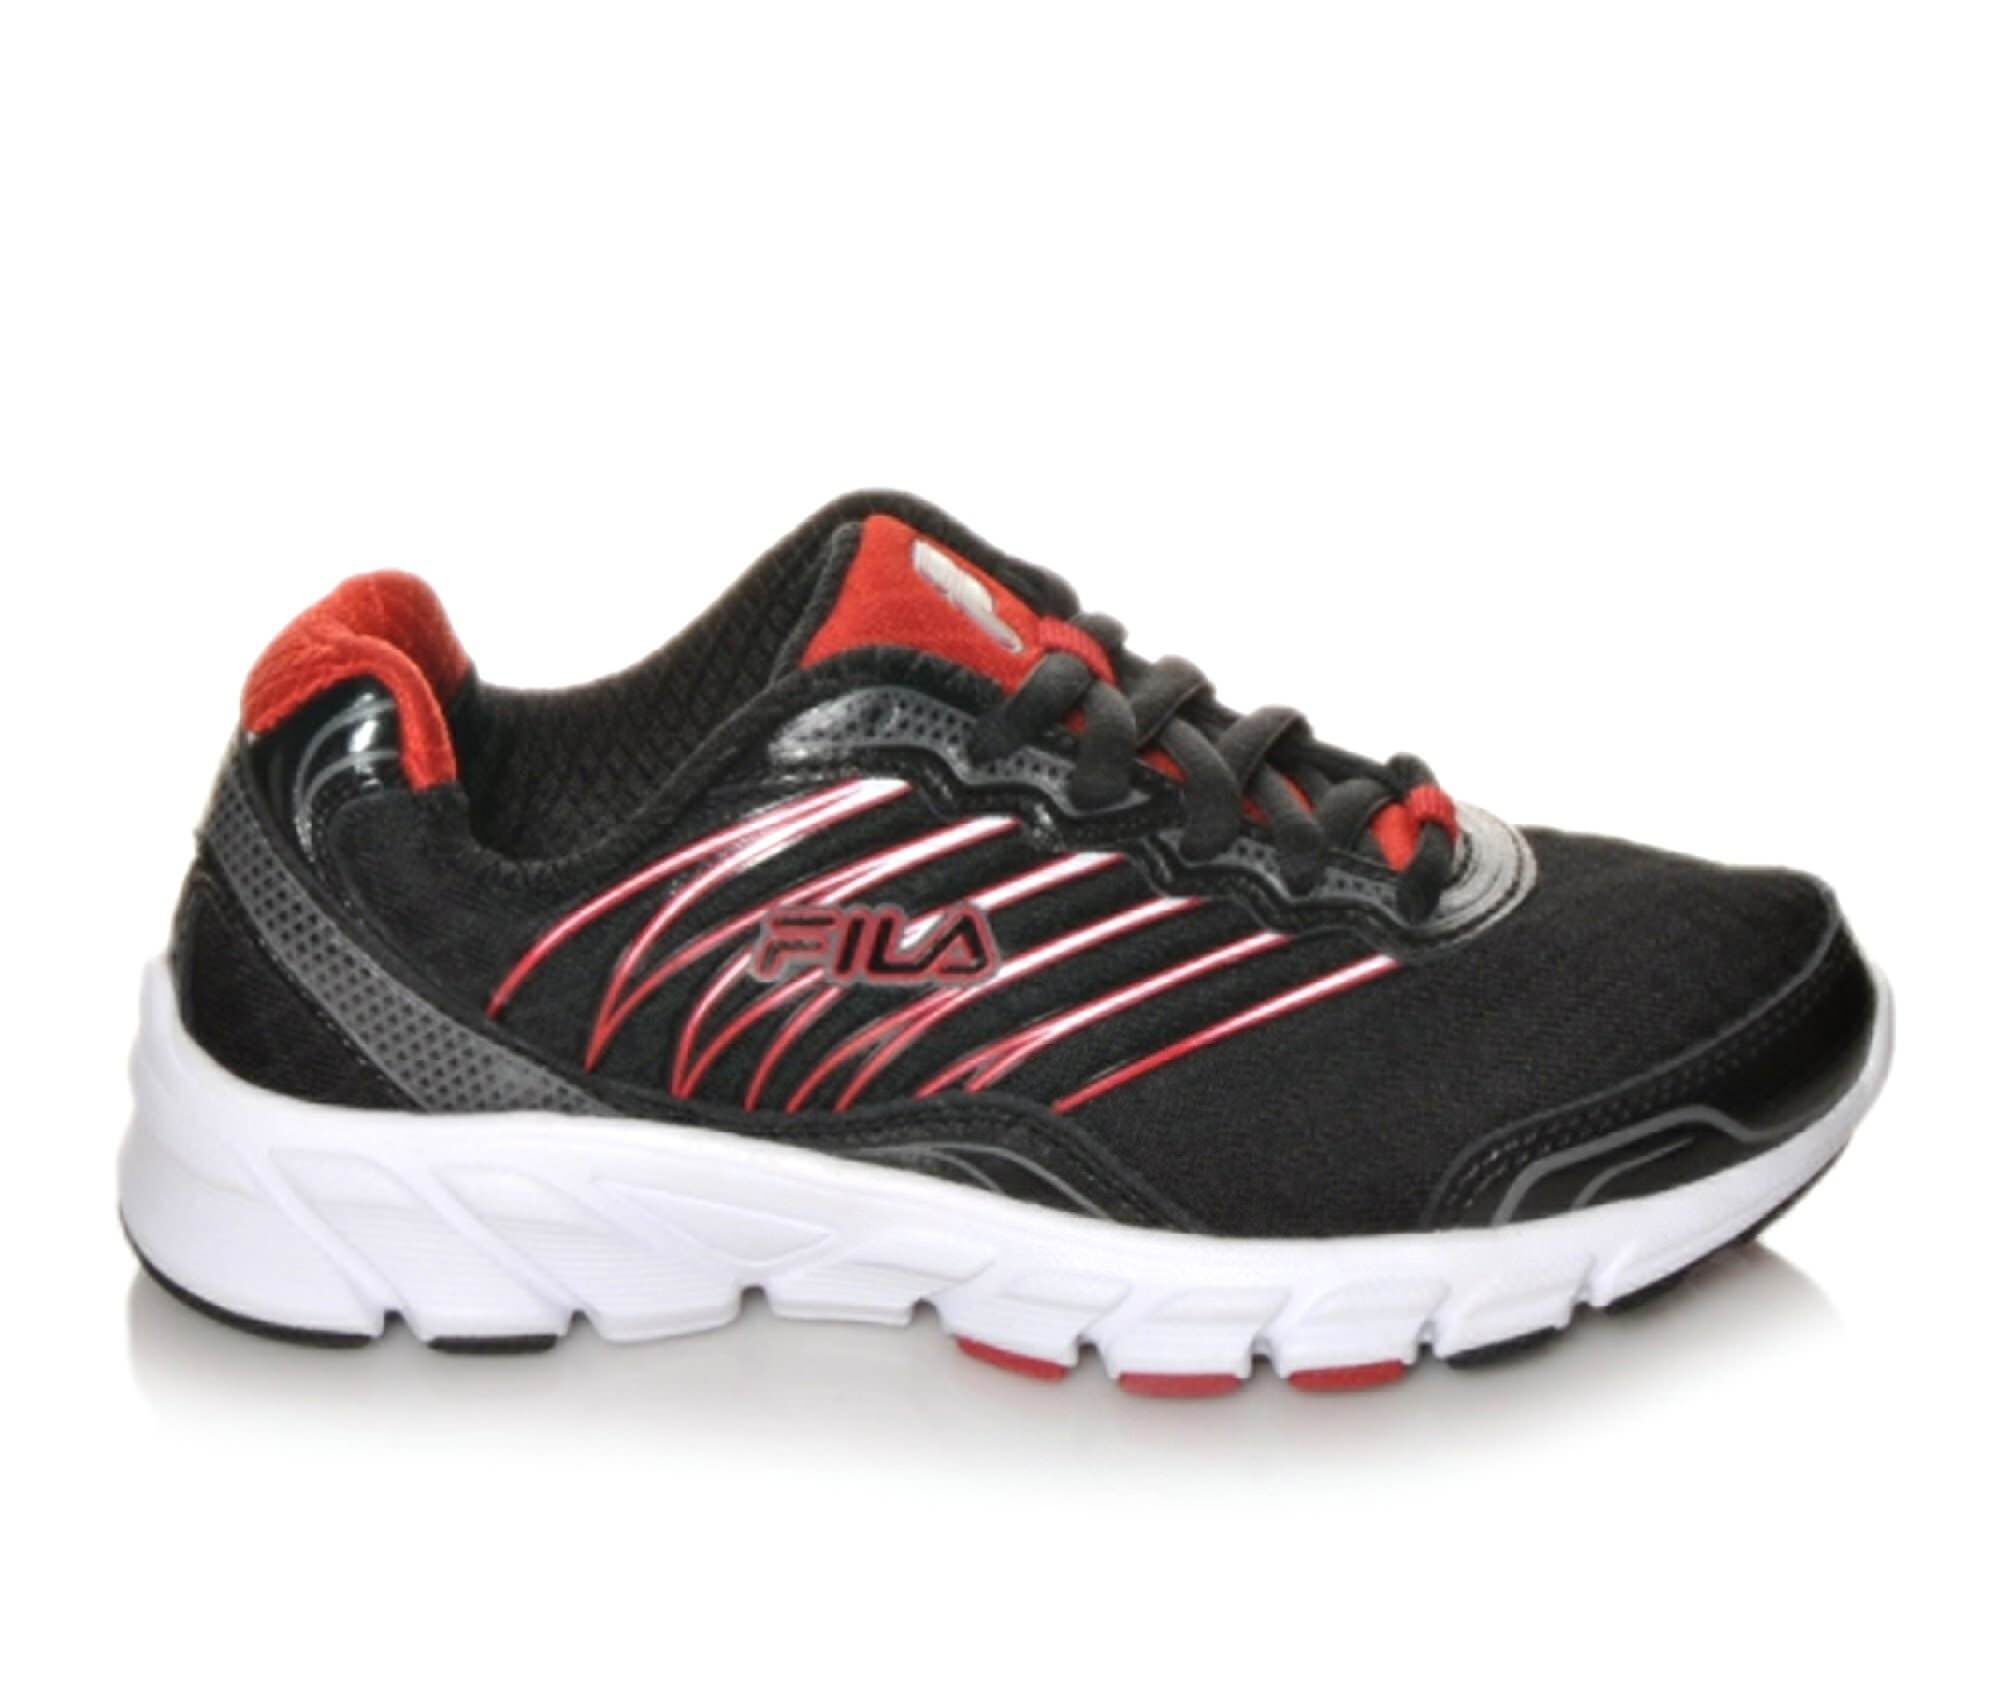 Fila Countdown 10 5 5 Boys Athletic Shoes Black/Red/Silver